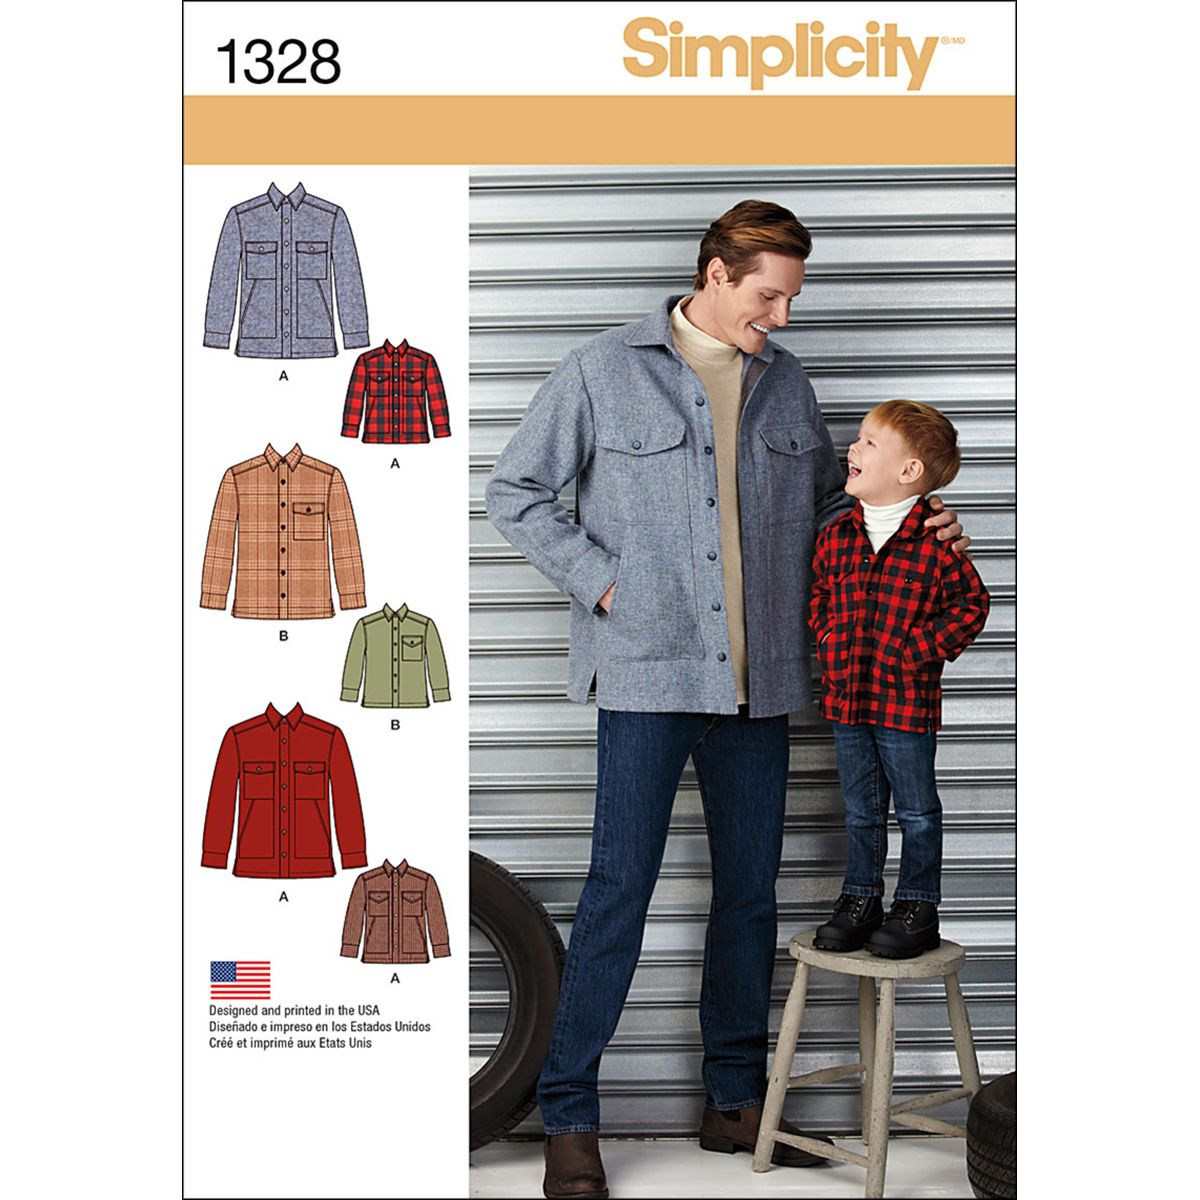 Boys and Mens Knit Pullover Shirts with Variations Size A Simplicity Sewing Pattern 1287